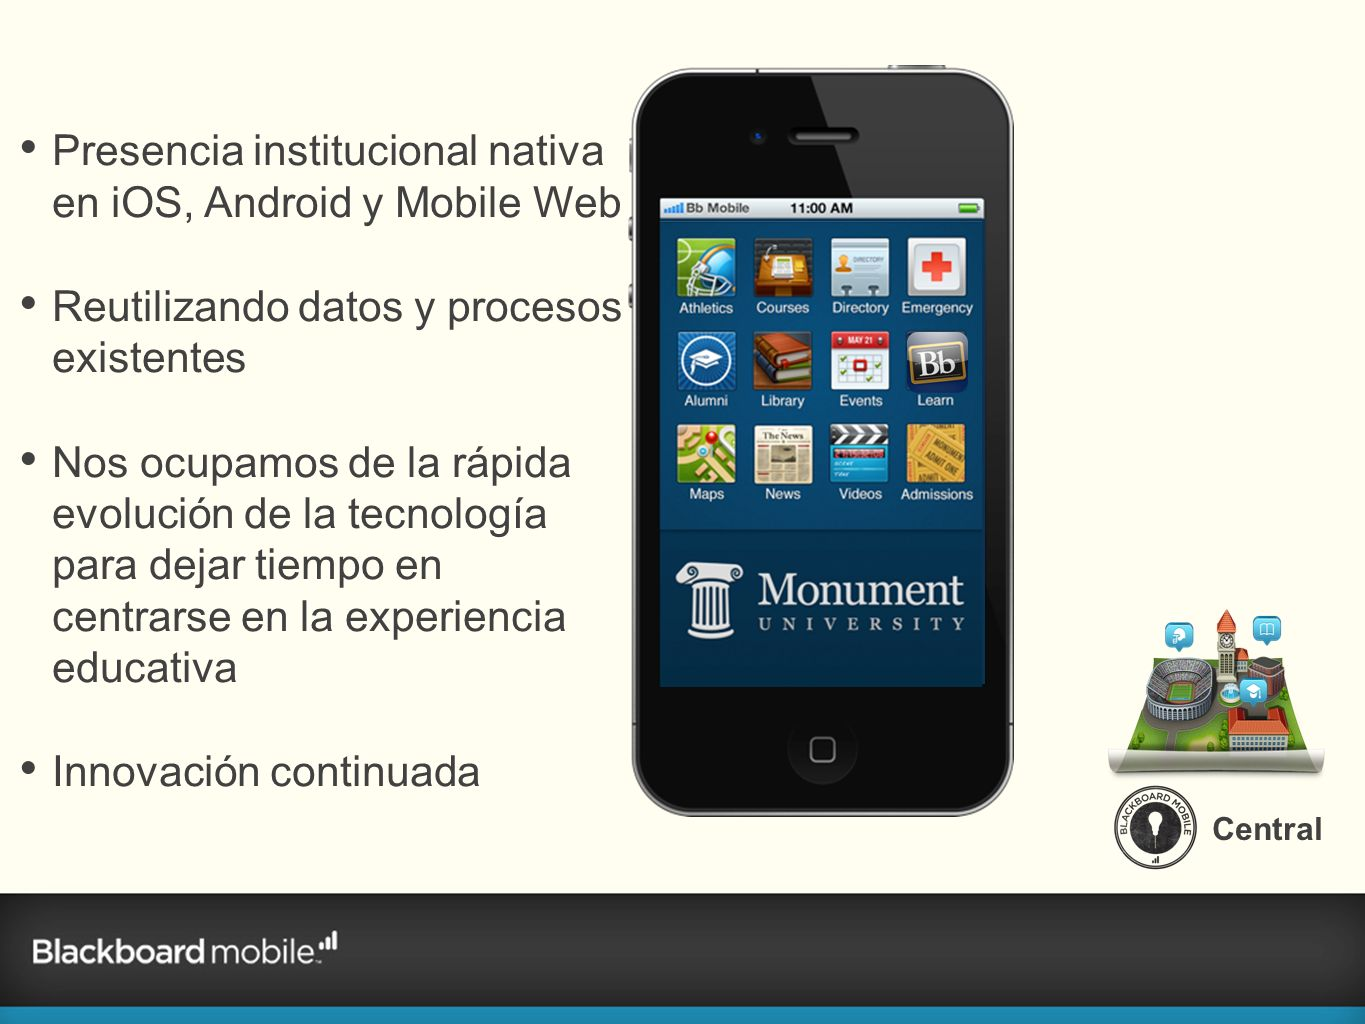 Presencia institucional nativa en iOS, Android y Mobile Web